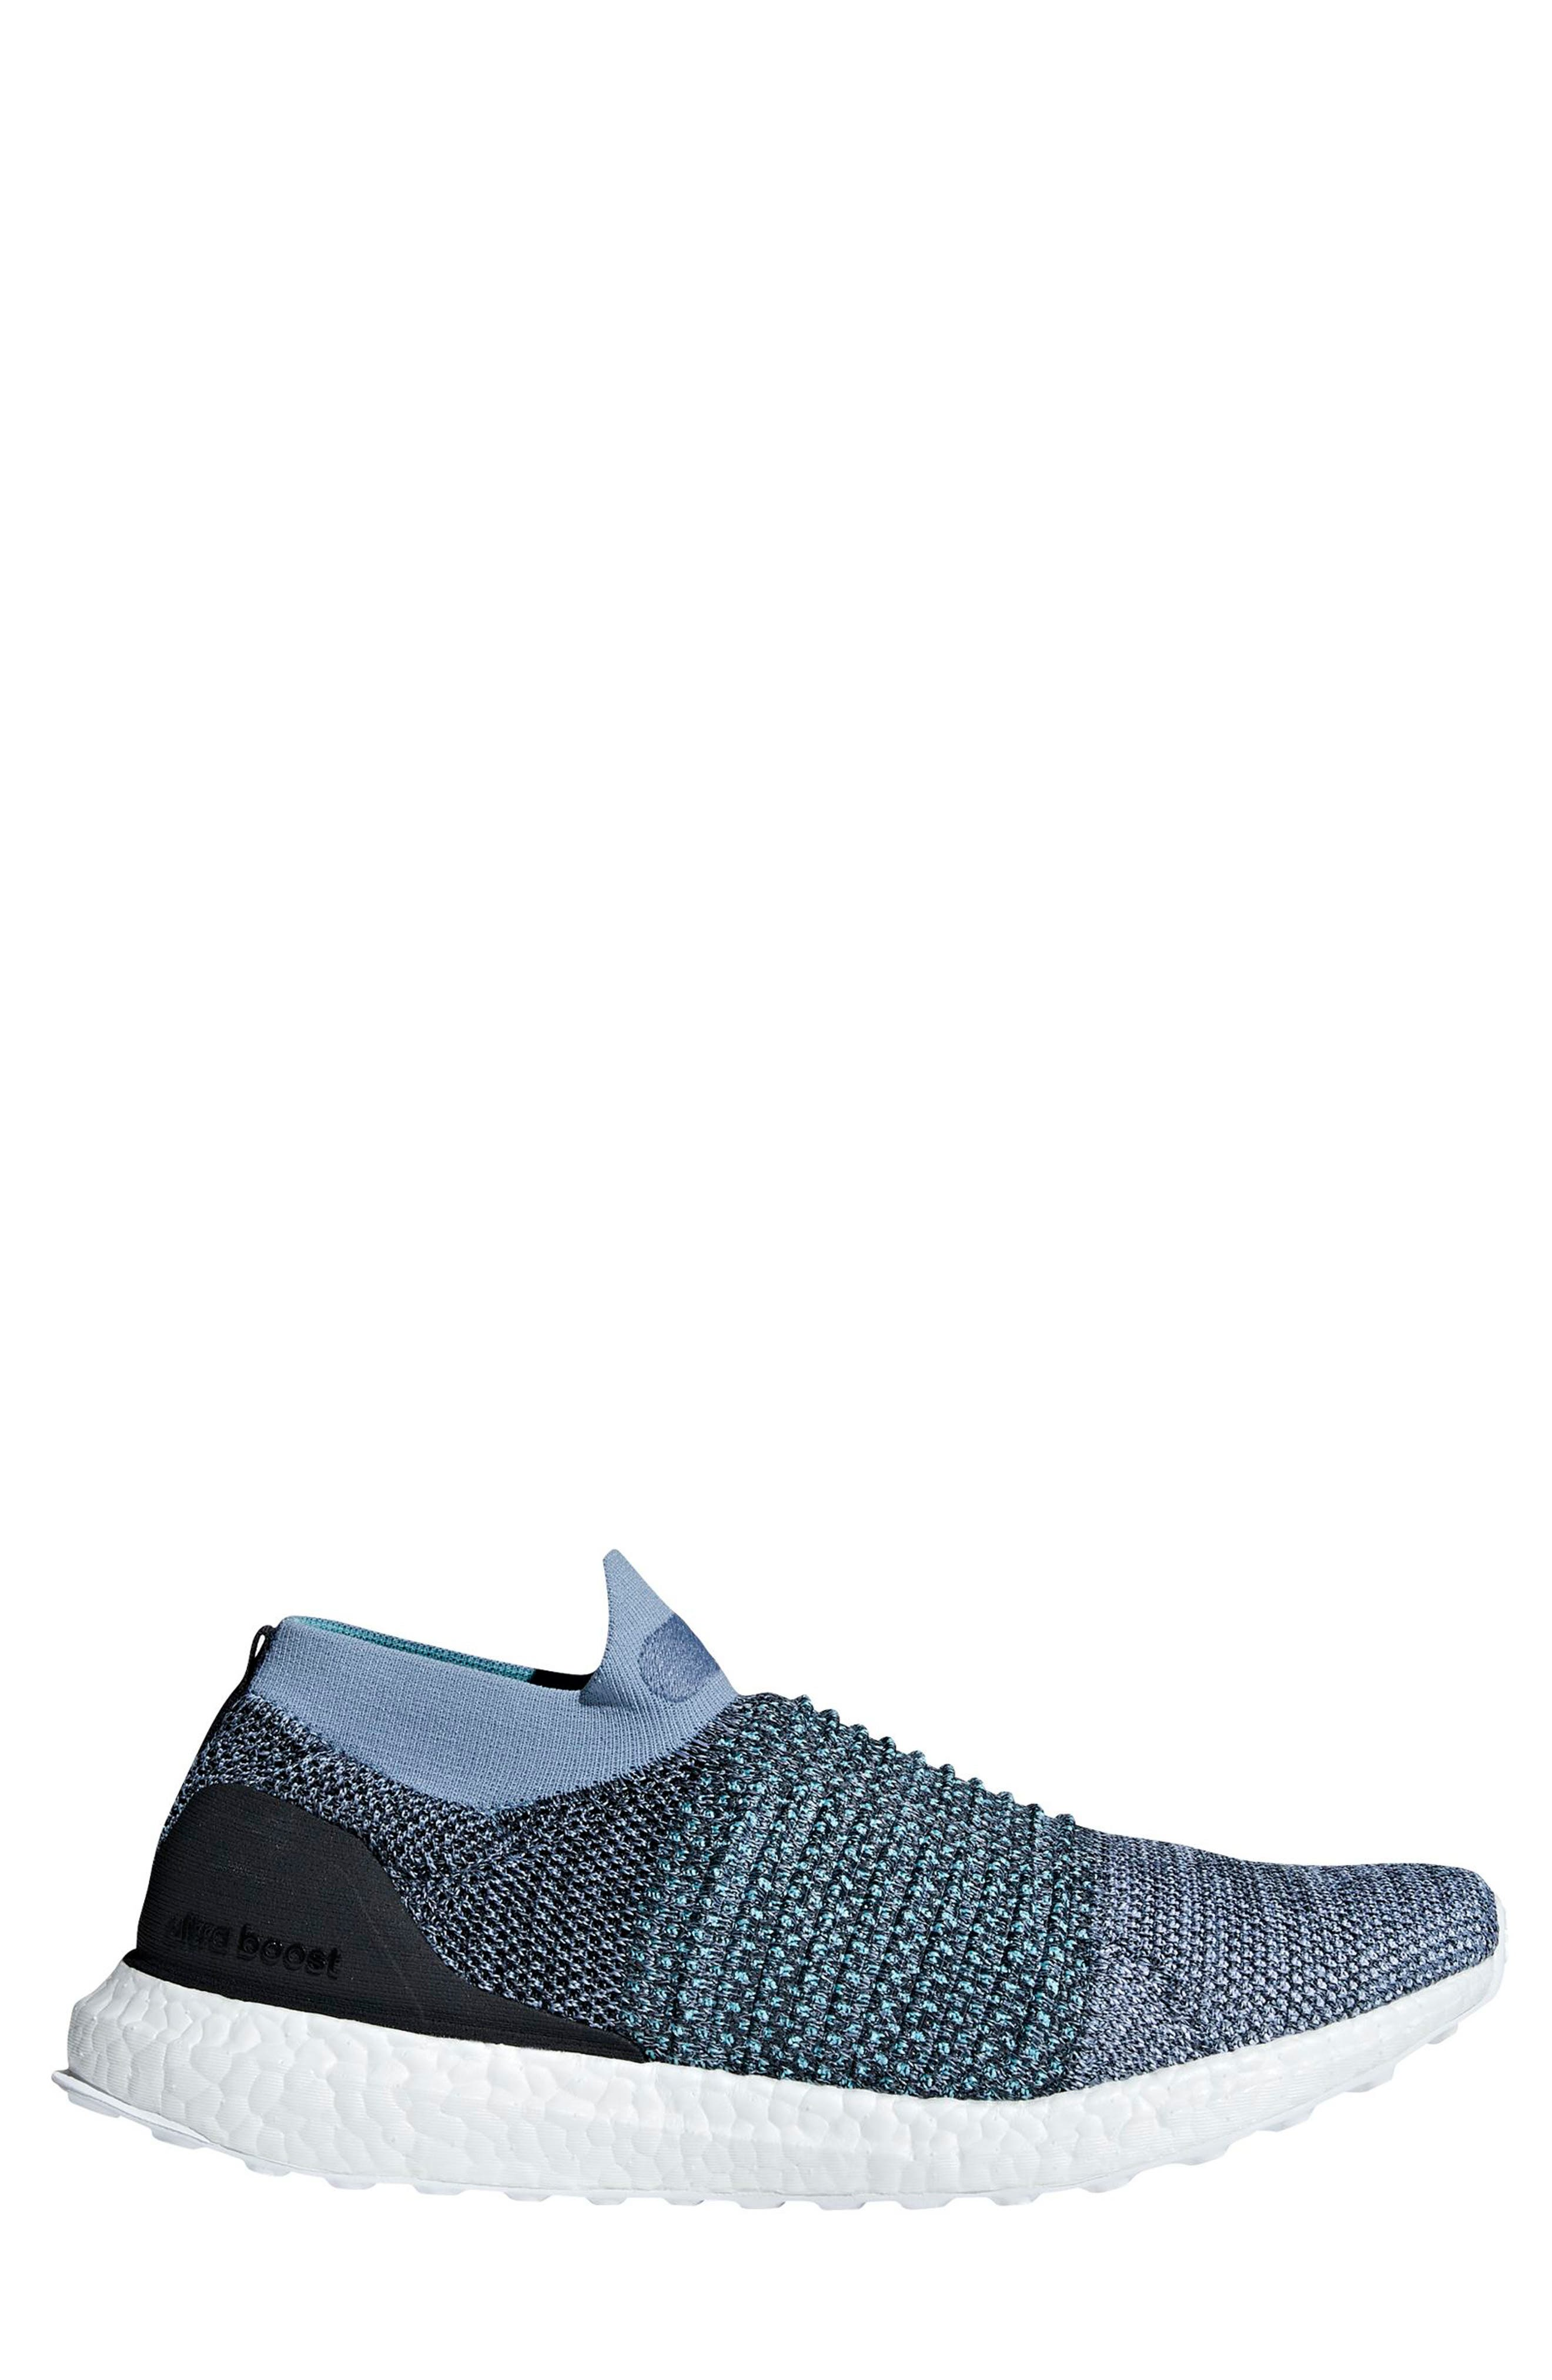 UltraBoost Laceless Running Shoe,                         Main,                         color, 060